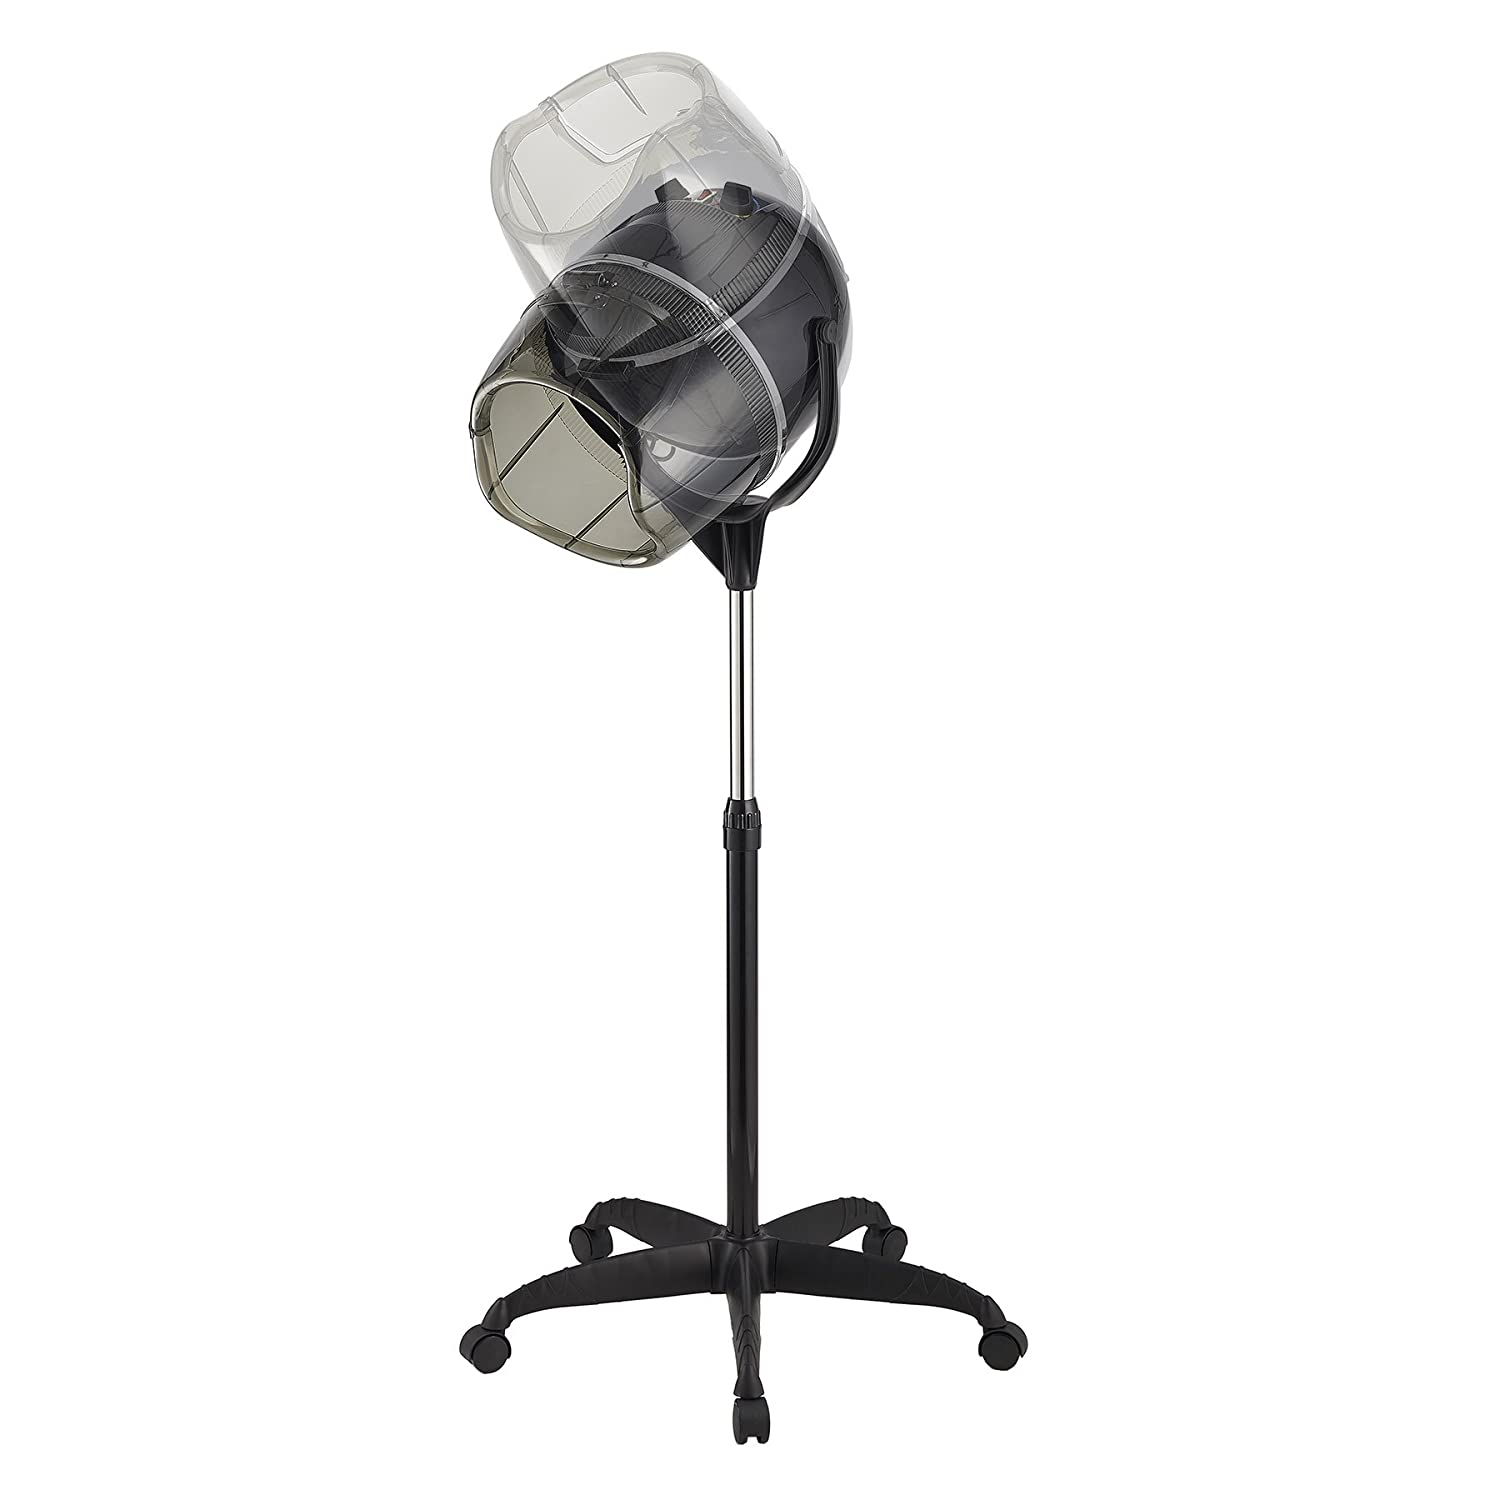 Y-NOT Professional Adjustable Hooded Stand Up Hair Bonnet Dryer, Floor Rolling Base with Wheels for Beauty Salon Equipment Home